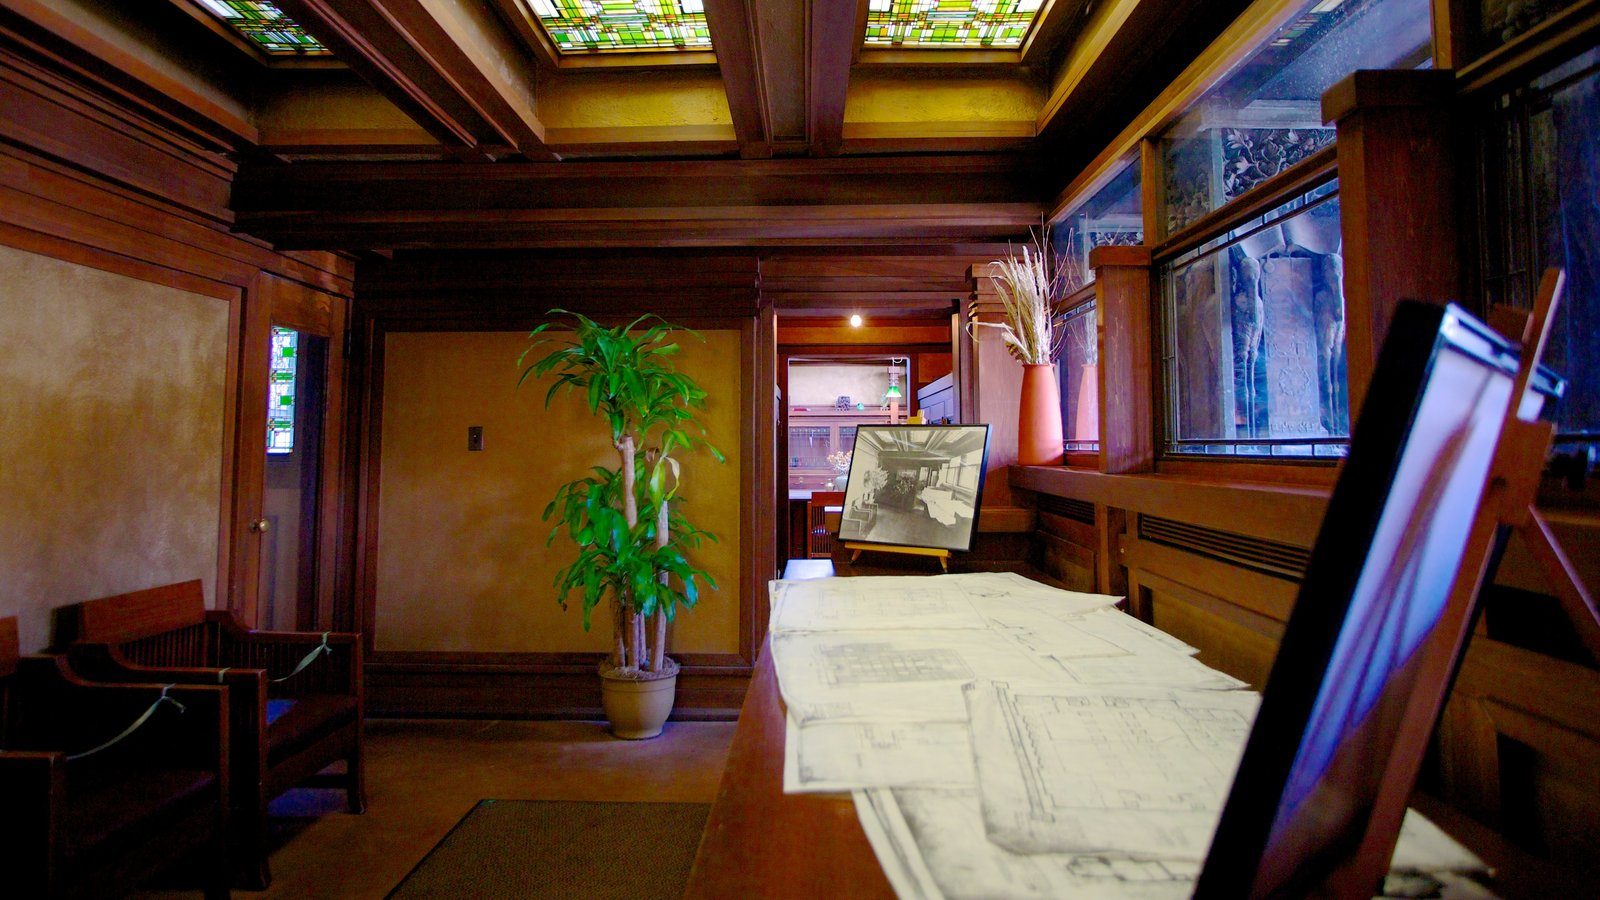 Frank Lloyd Wright Home and Studio which includes interior views